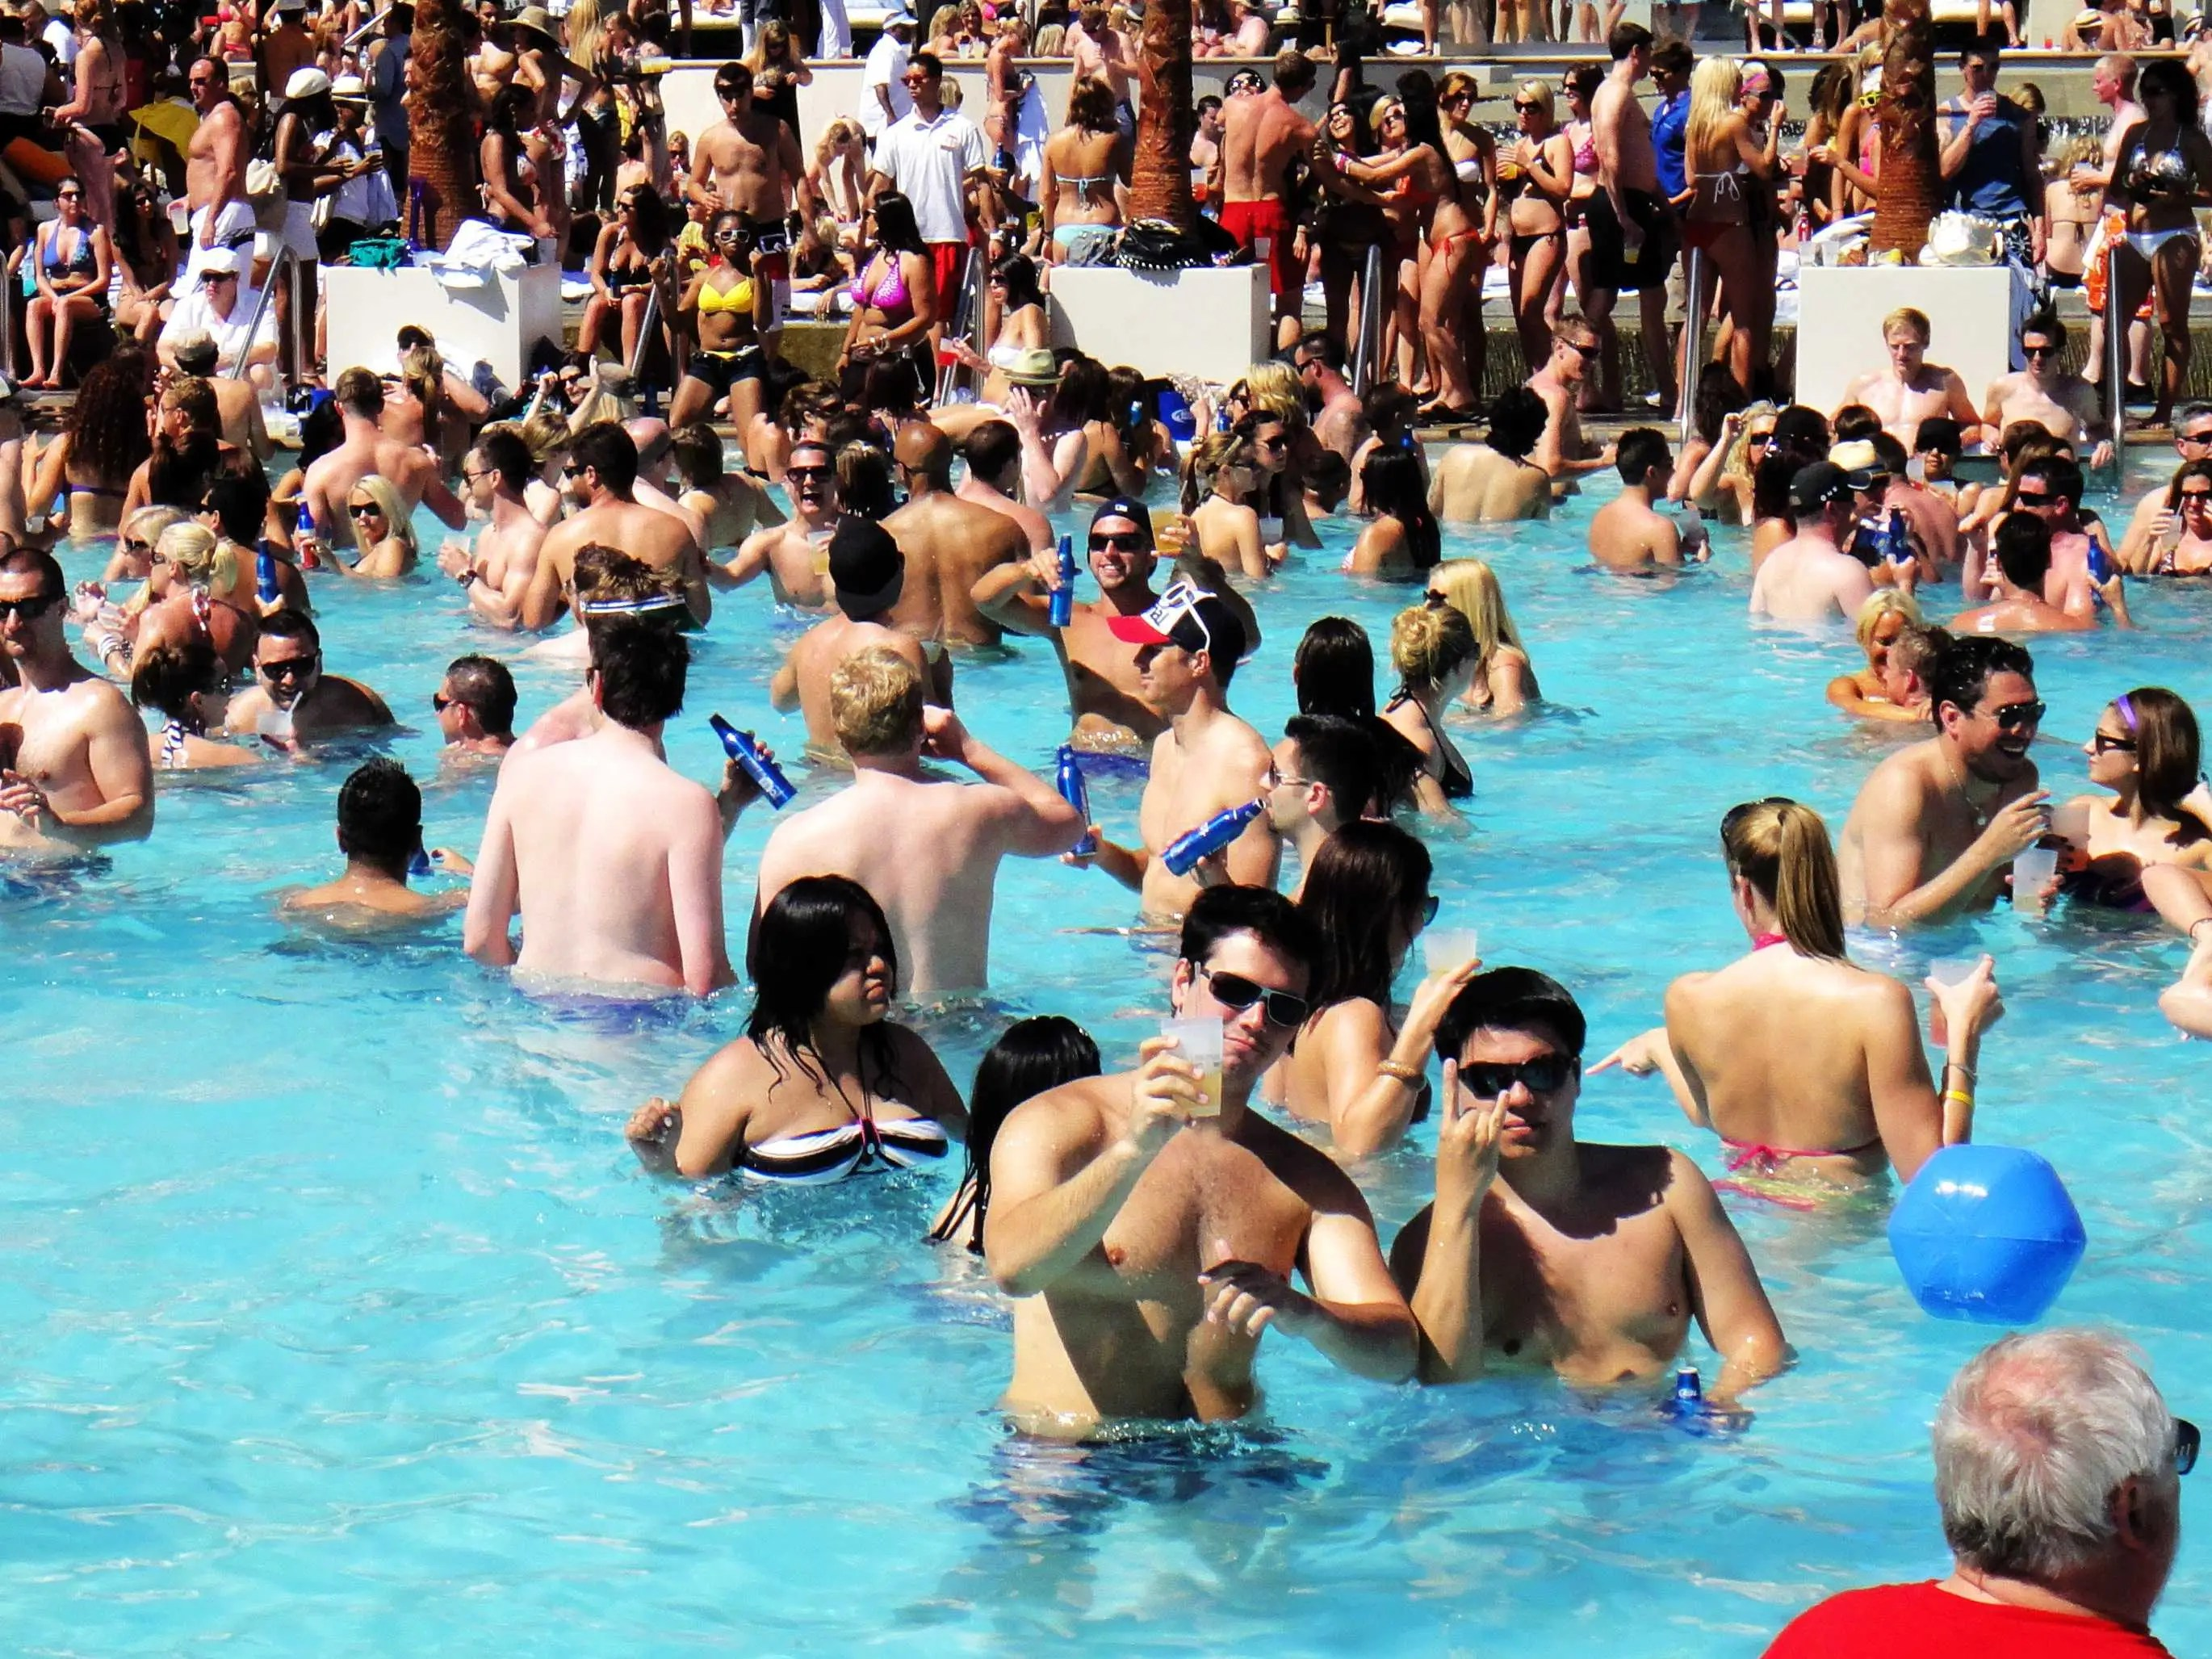 Get wet and wild at a pool party in Las Vegas, Nevada.